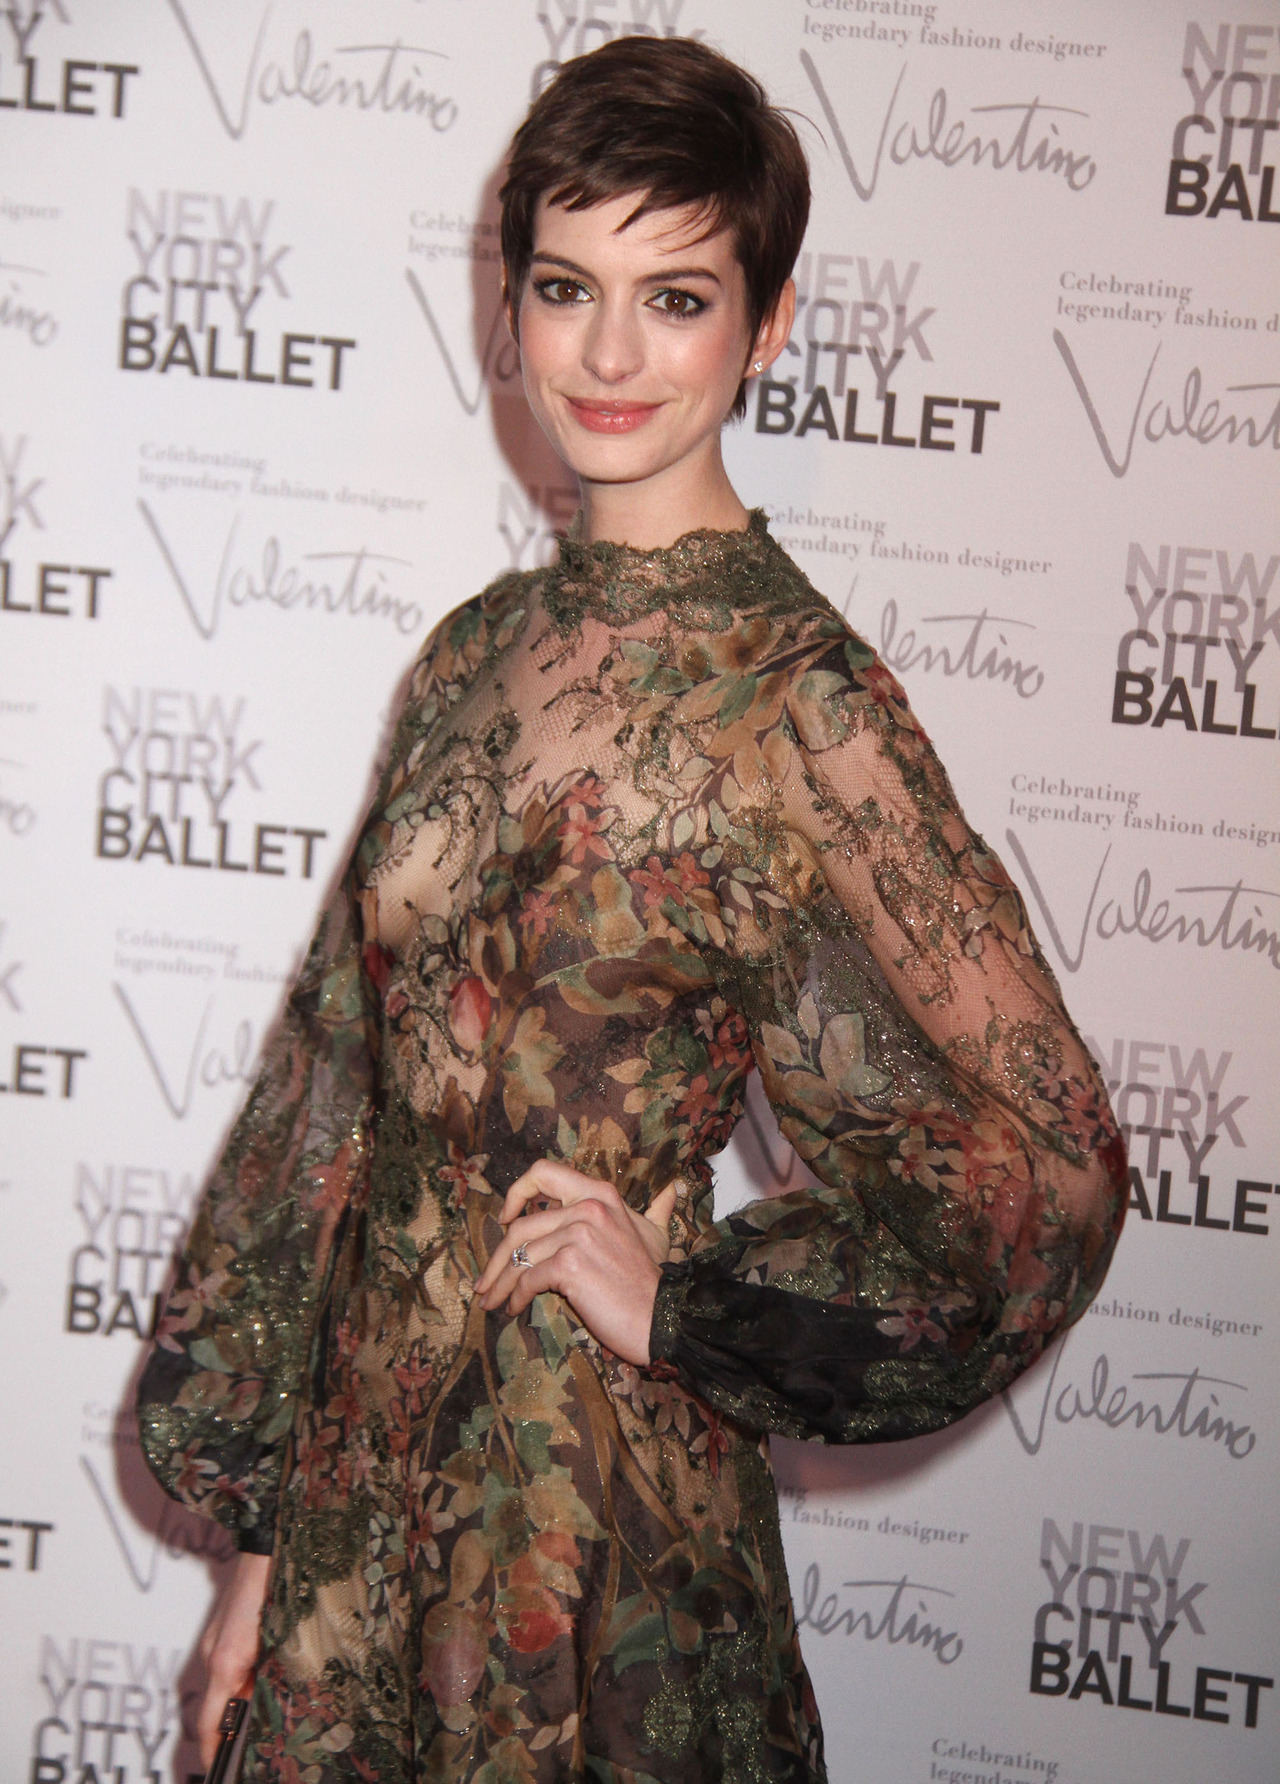 leitnickgirl:  suicideblonde:  Anne Hathaway at the NYC Ballet Gala, September 20th  she looks damn good.